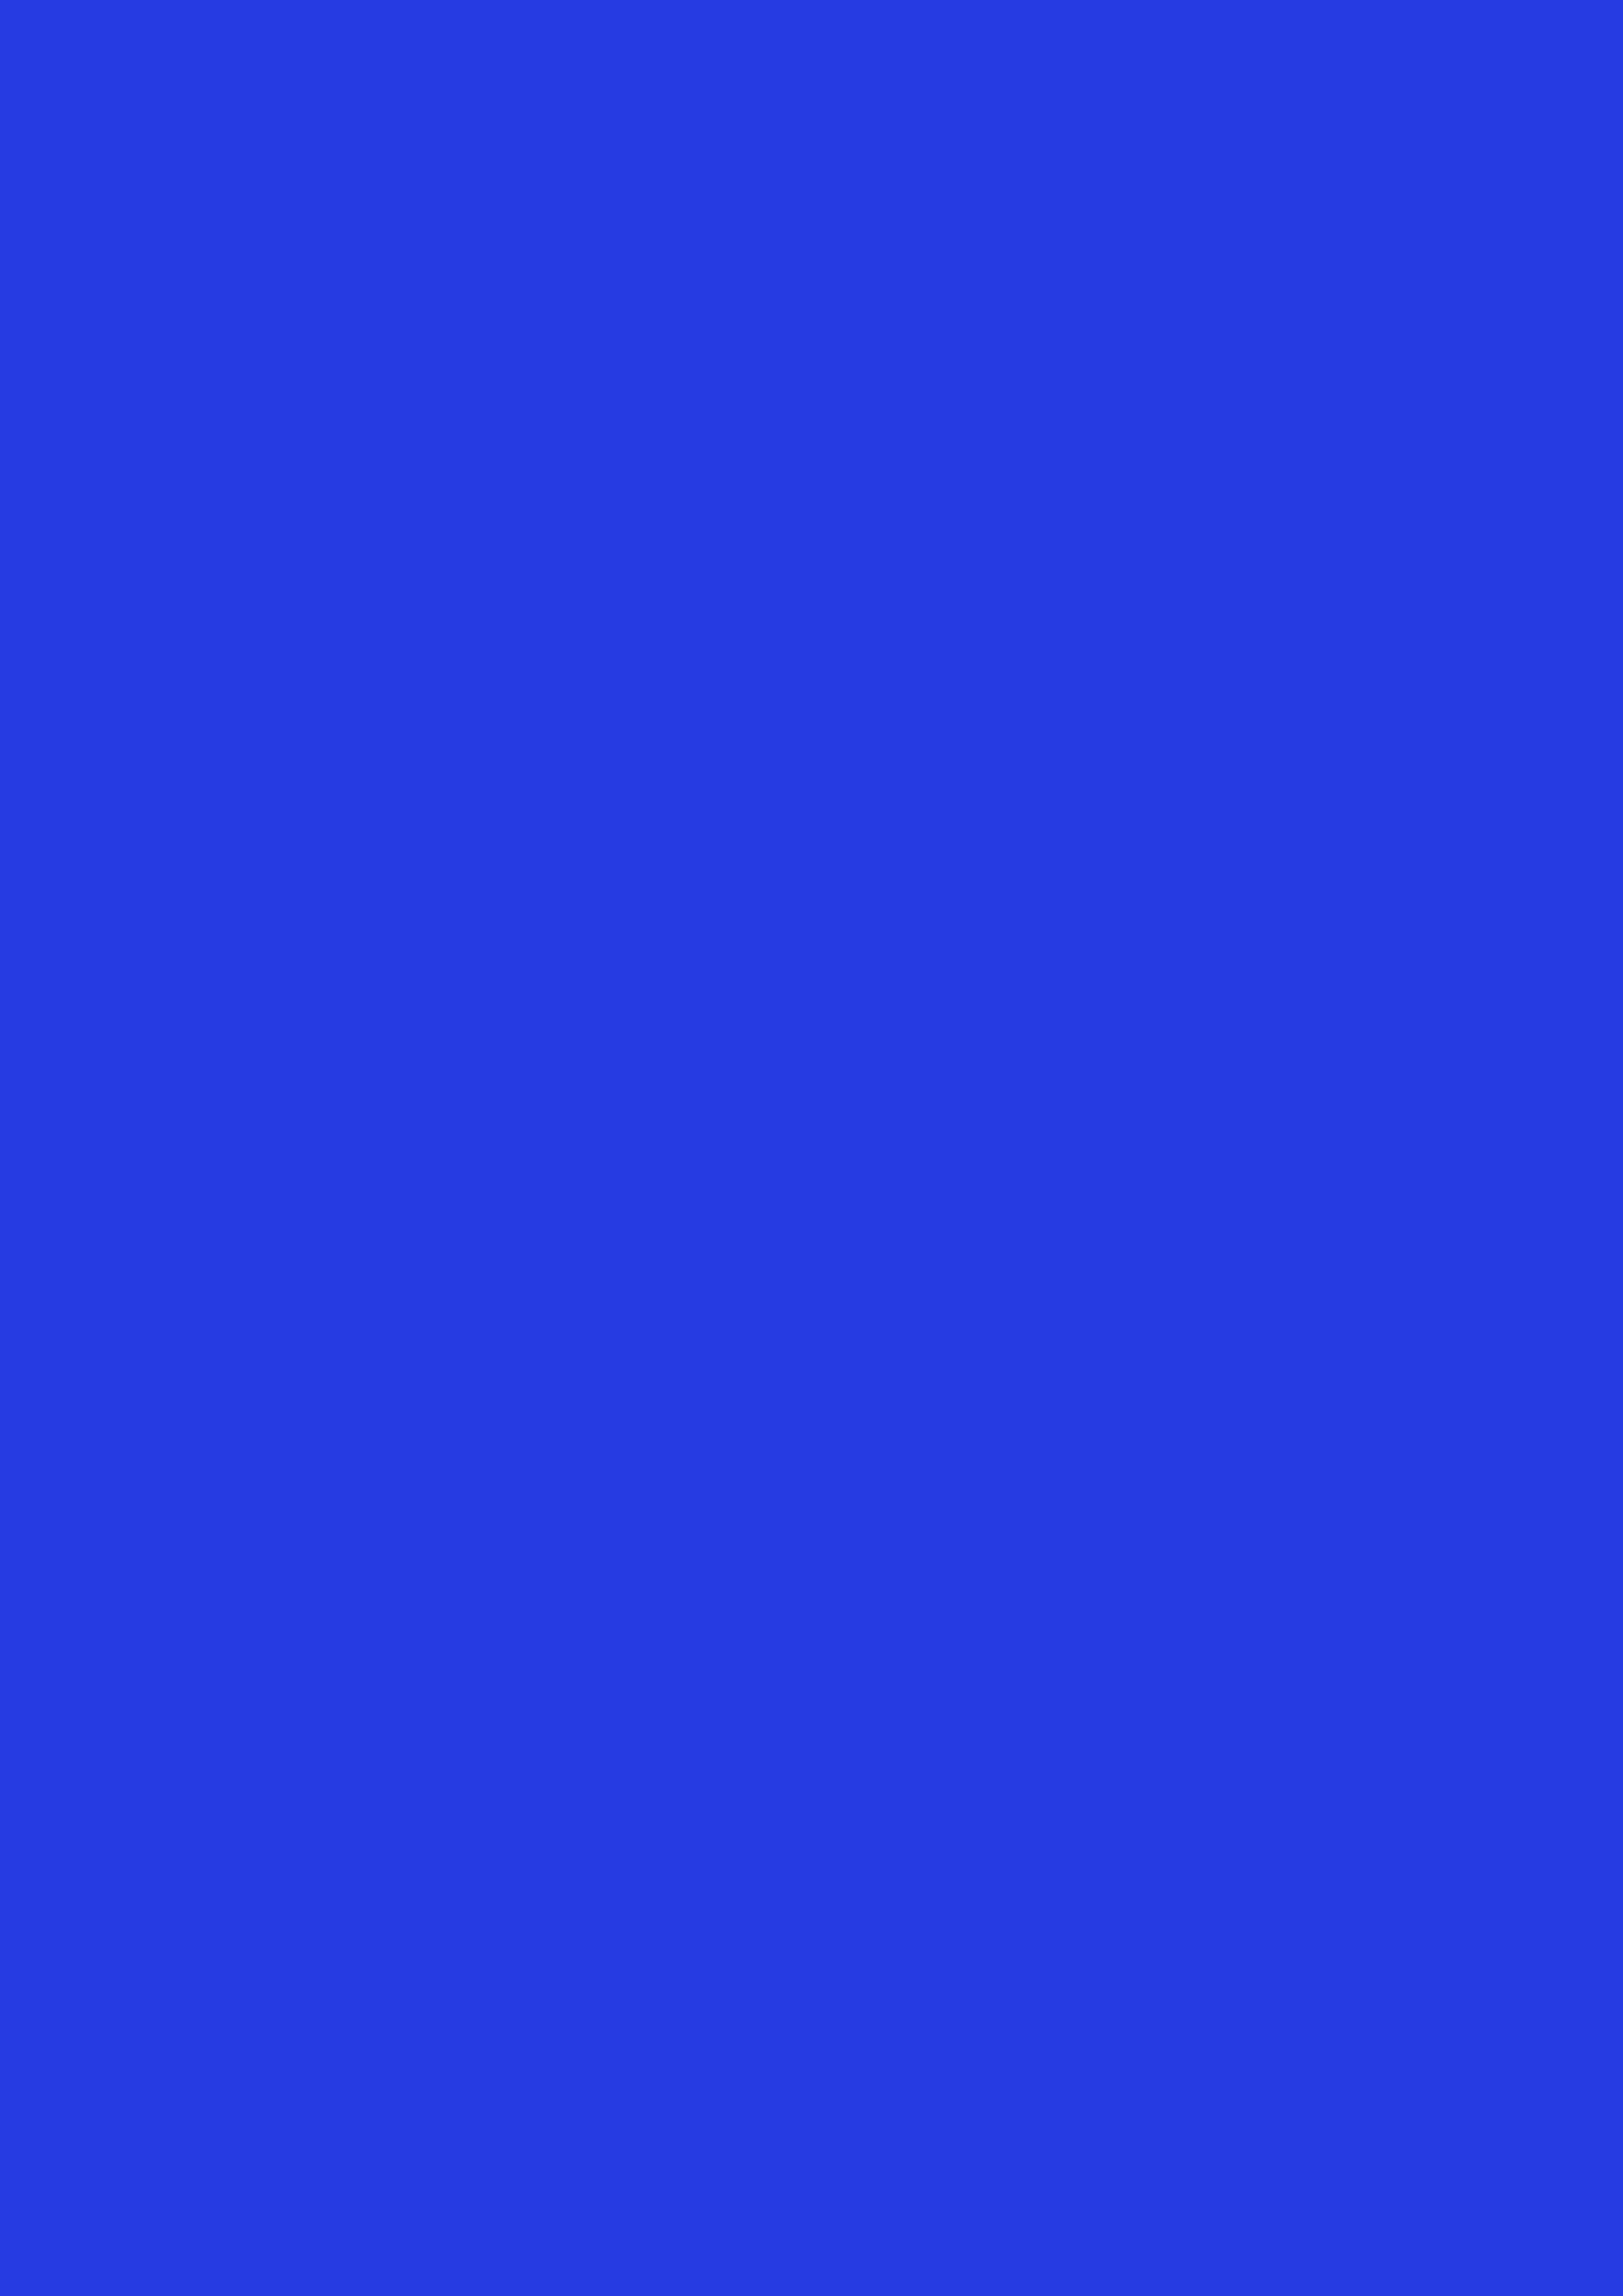 2480x3508 Palatinate Blue Solid Color Background